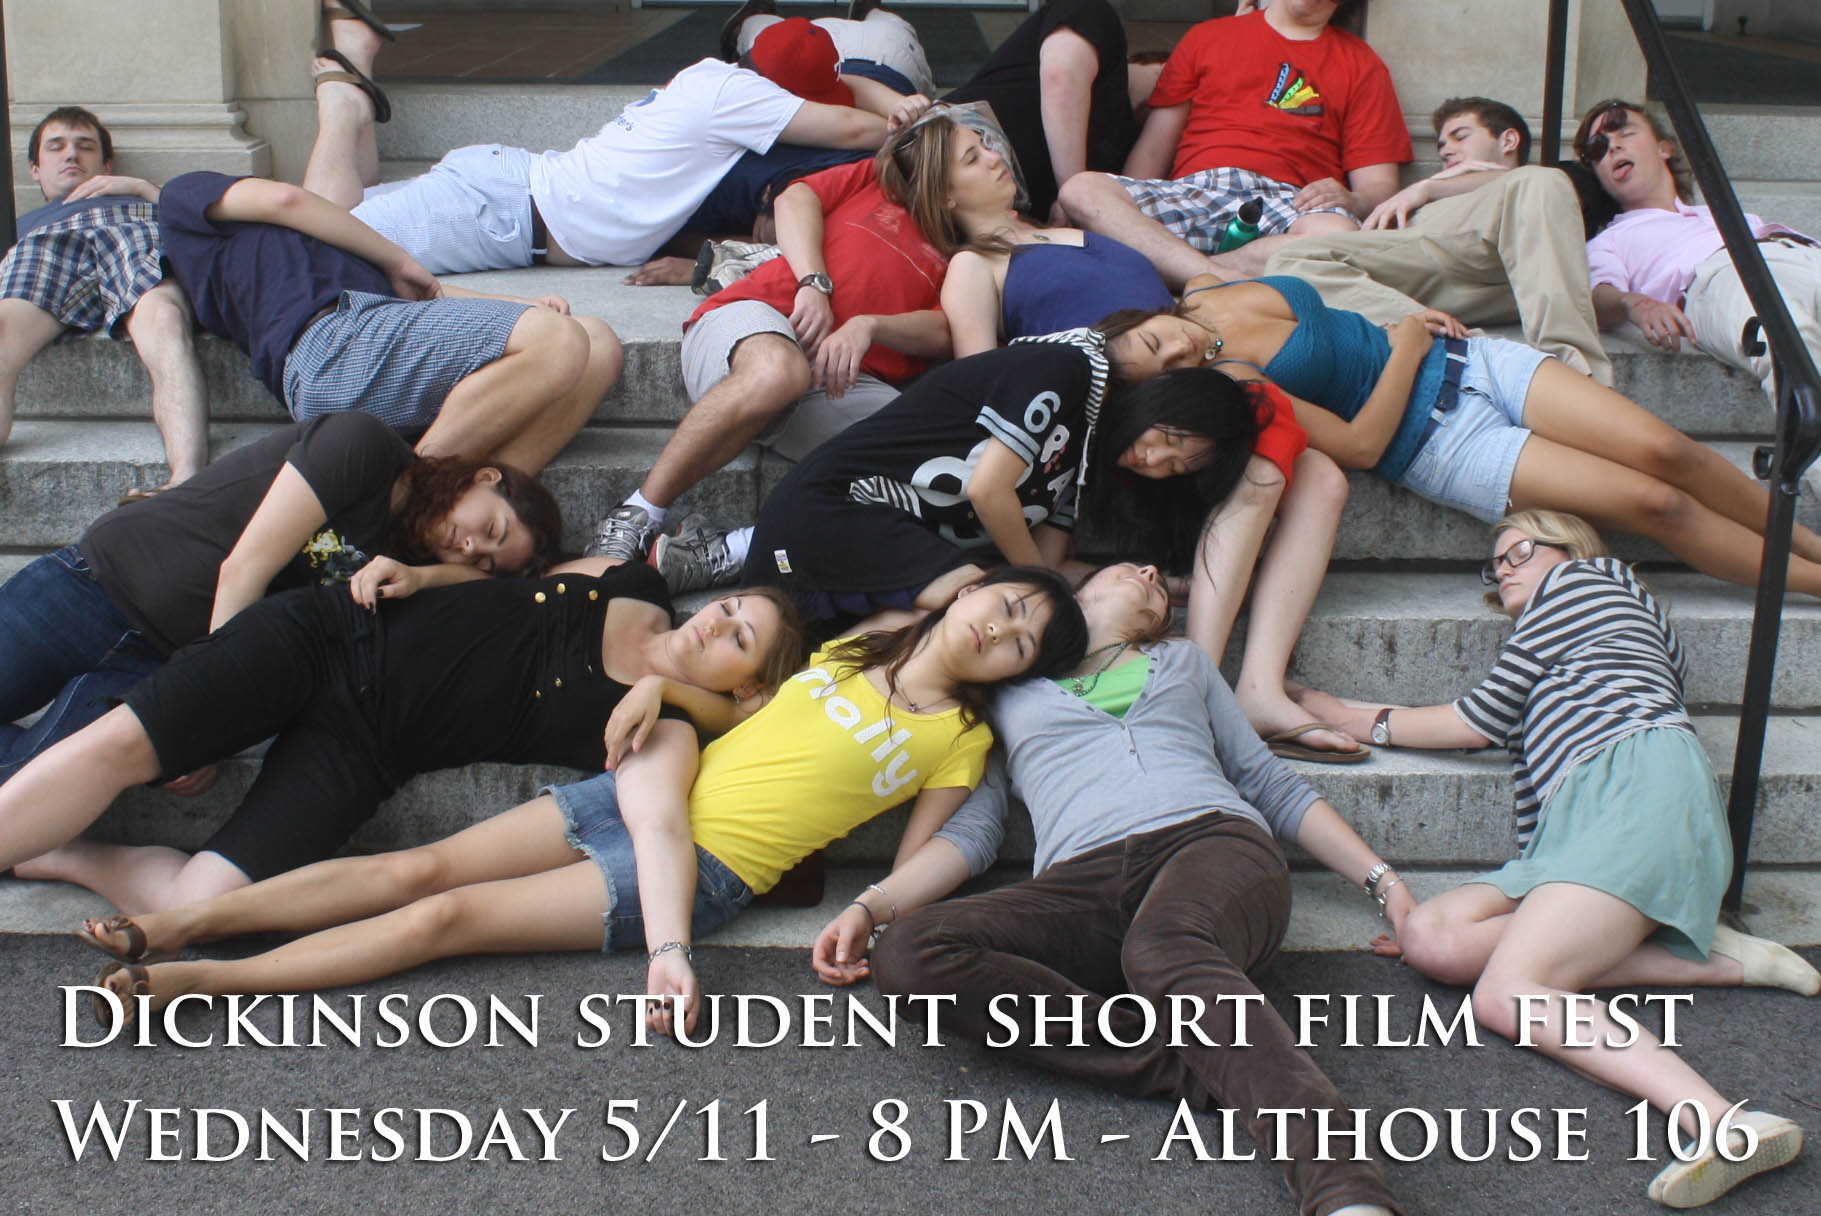 Dickinson Student Short Film Festival